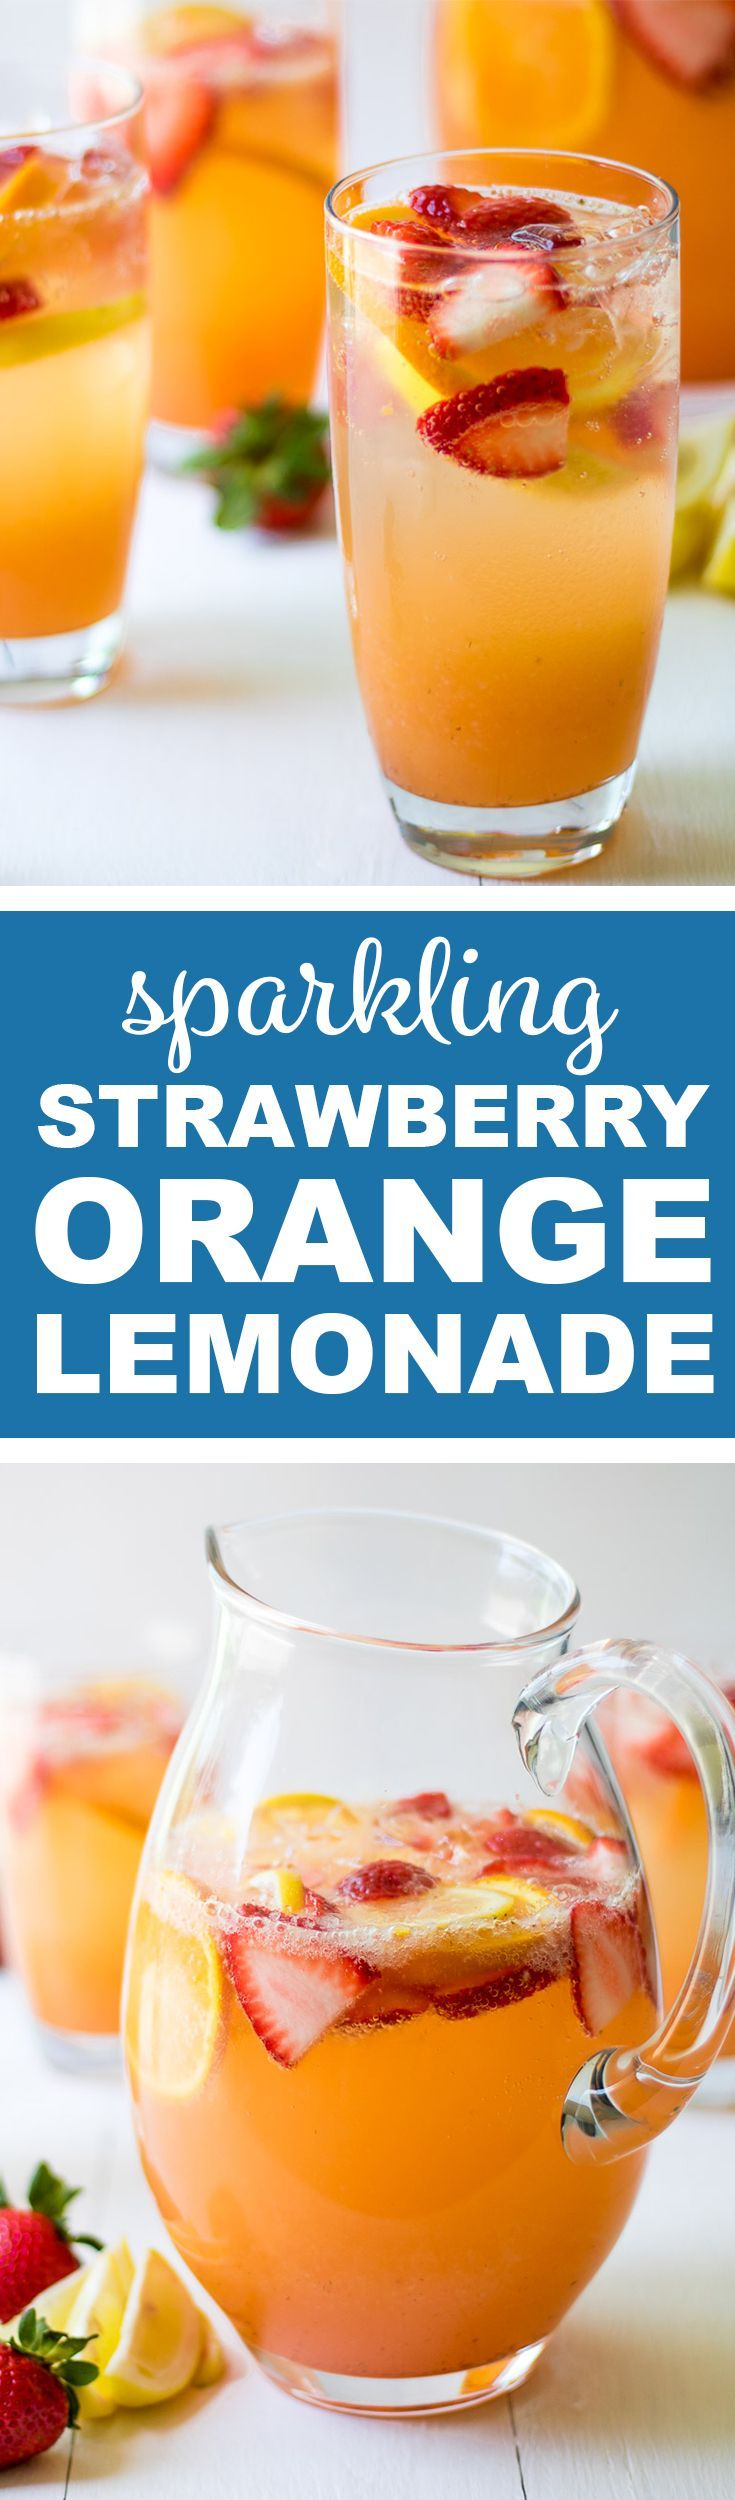 This Sparkling Strawberry Orange Lemonade is a perfectly refreshing summer drink. It is easy to make, not too sweet, and not too tangy.